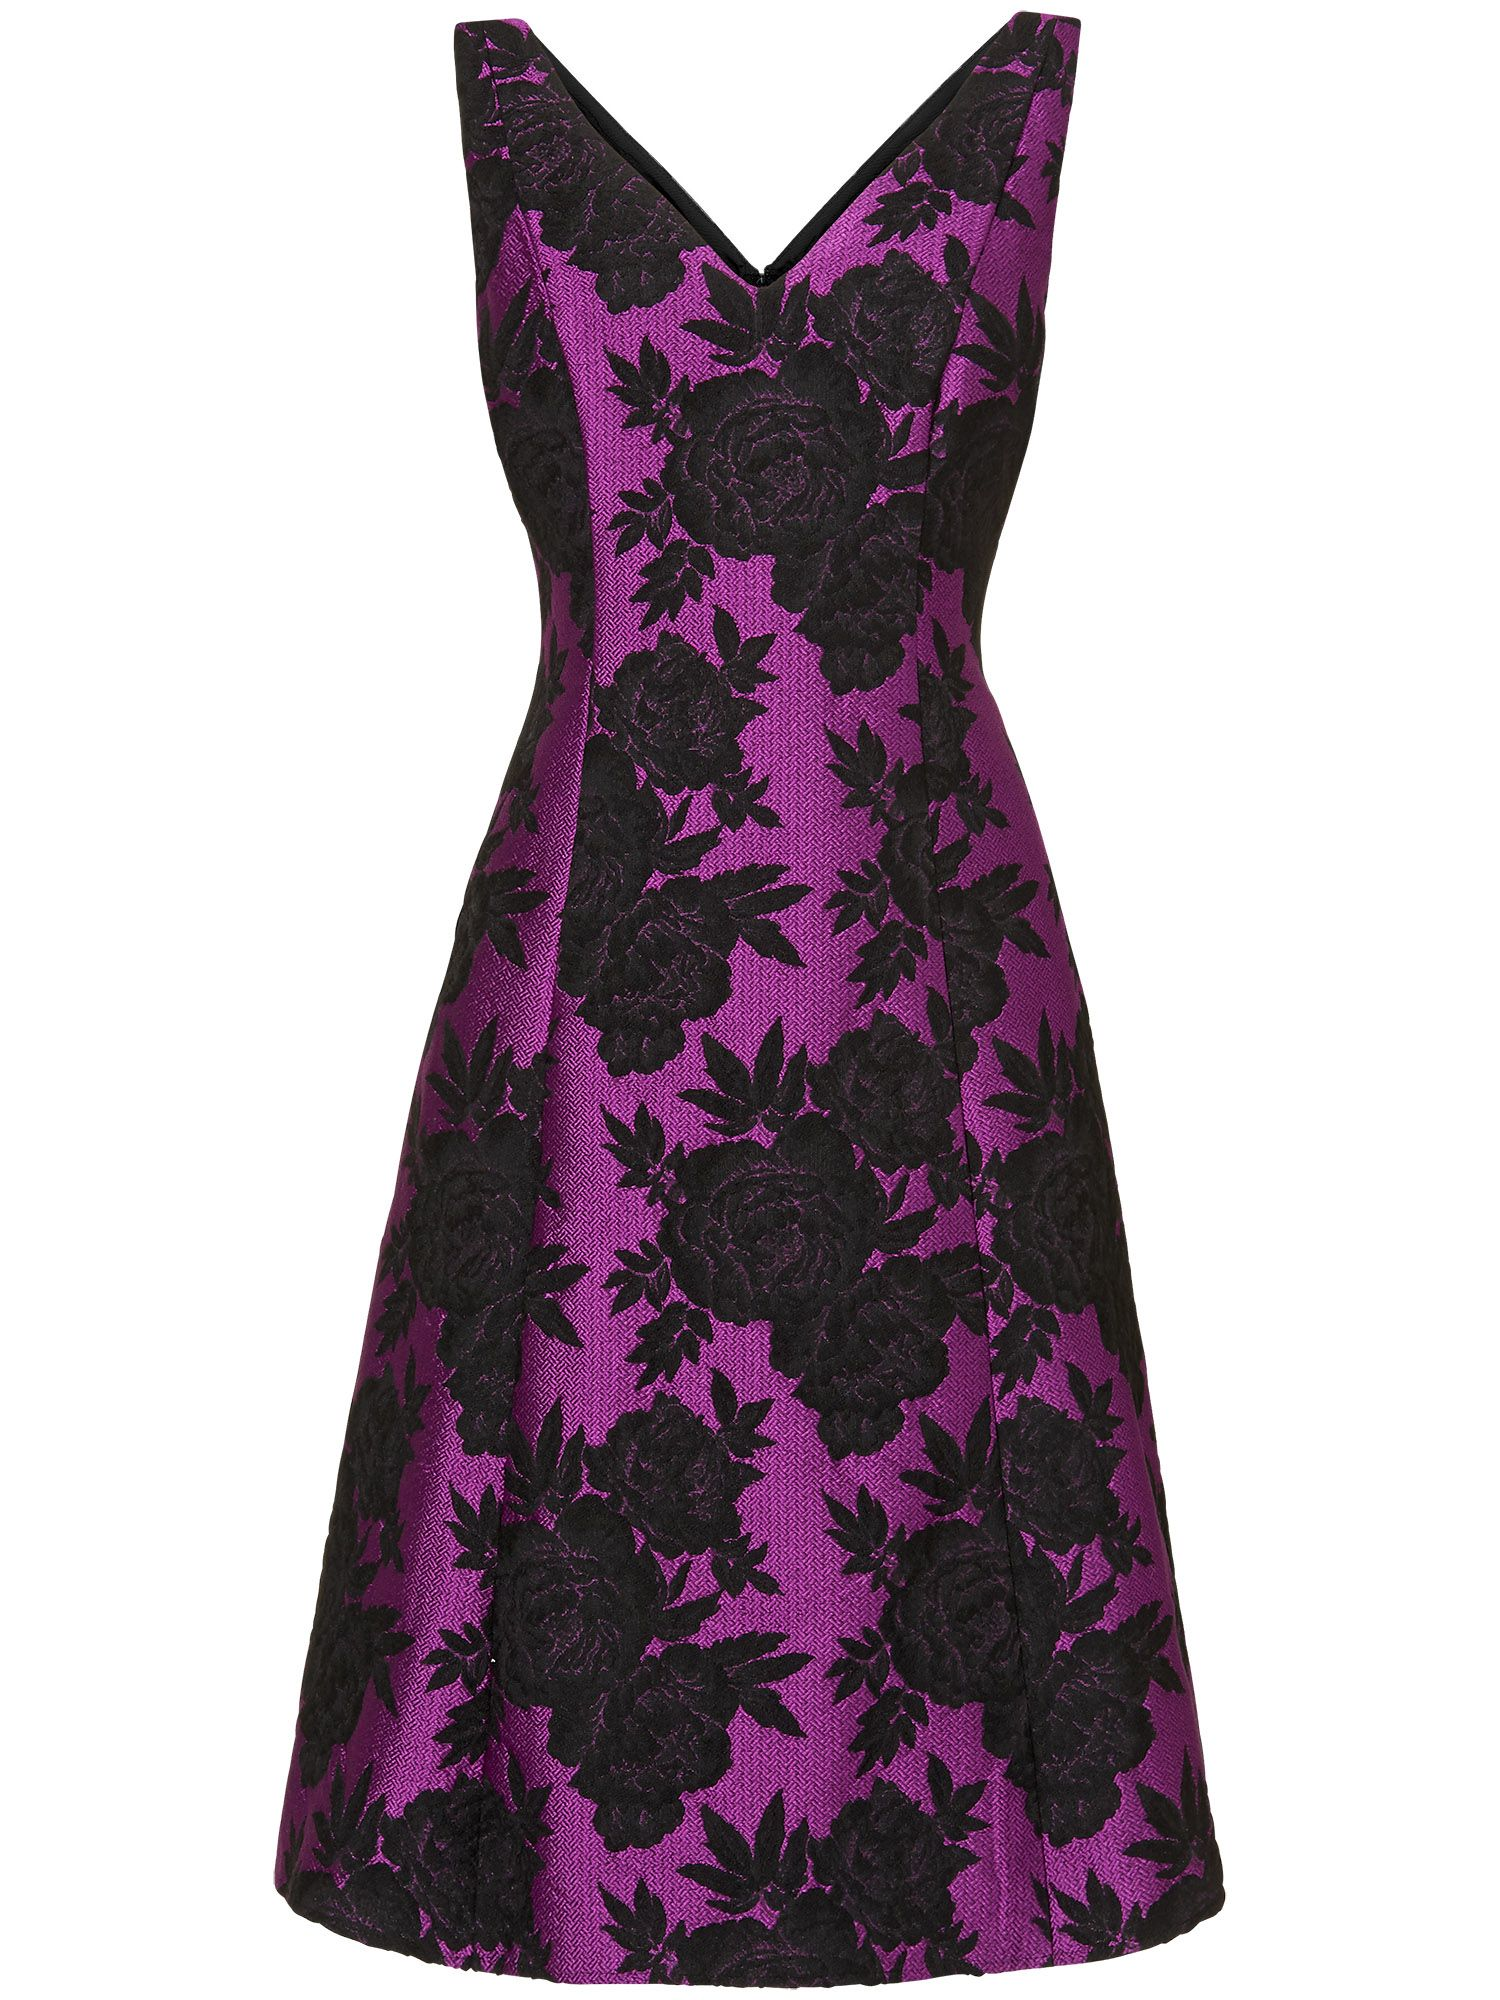 Delilah jacquard dress